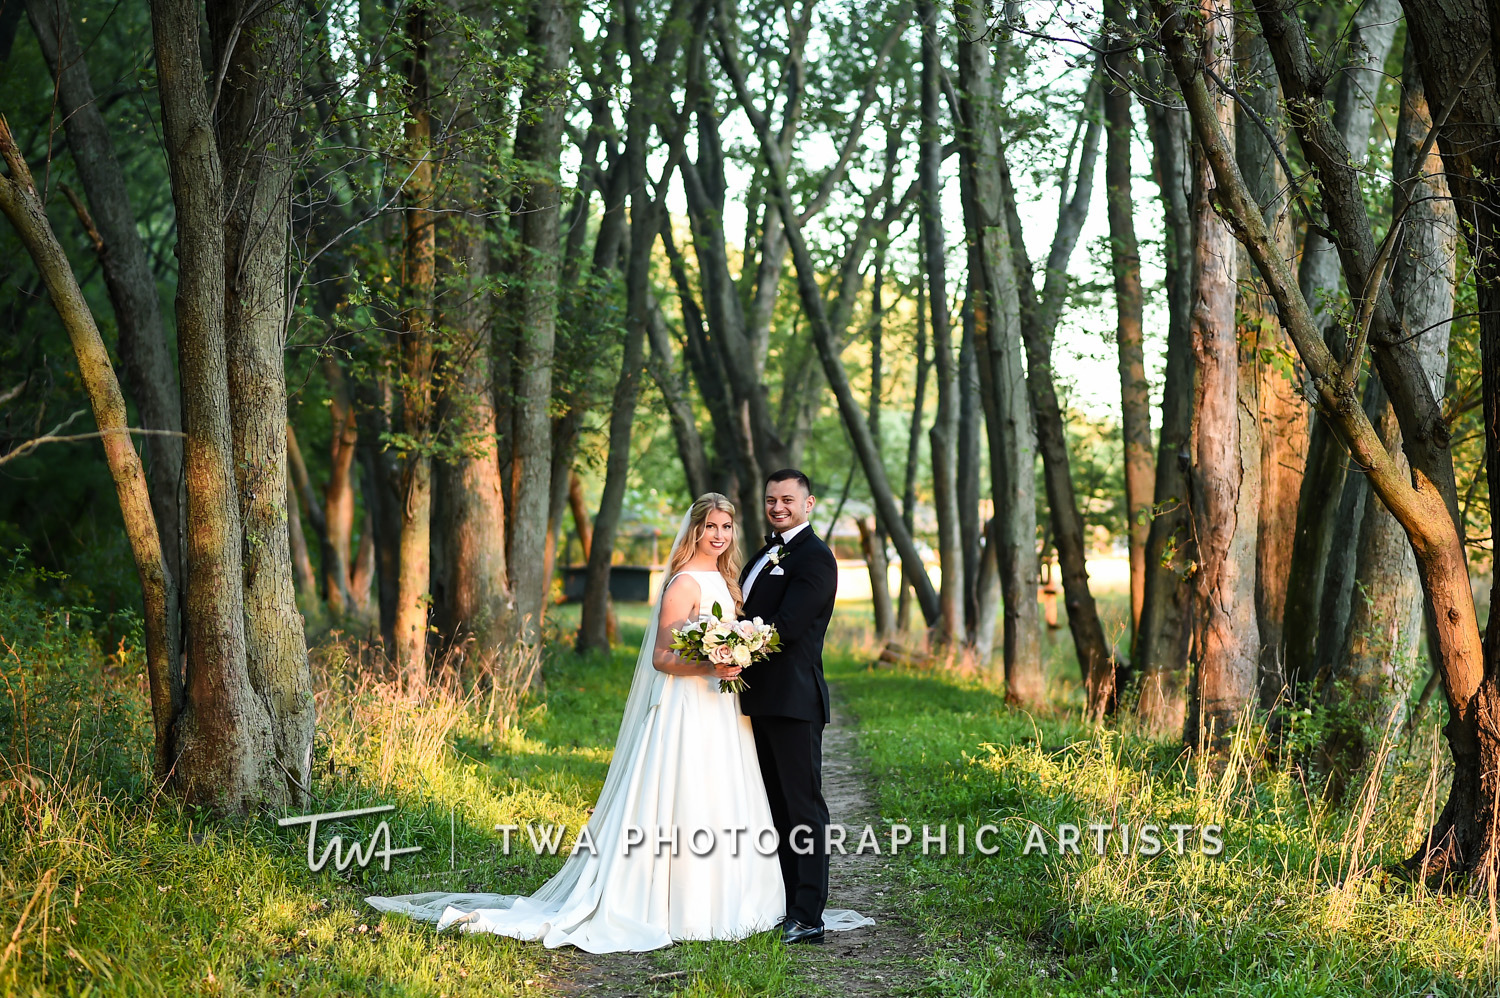 Chicago-Wedding-Photographer-TWA-Photographic-Artists-Private-Residence_Howes_Koczmara_SR_TL-0783